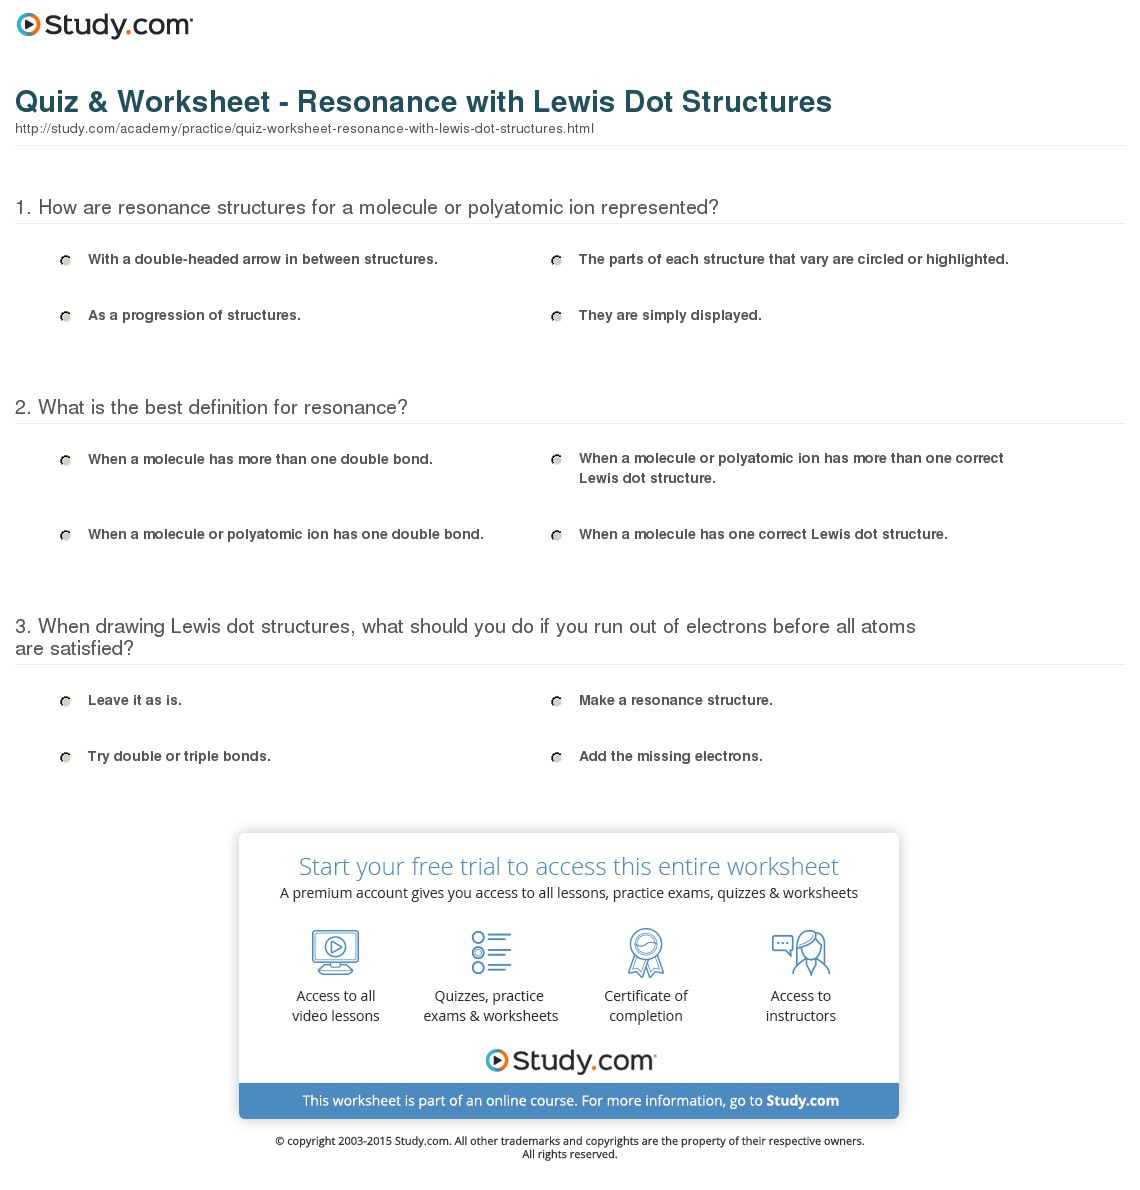 Quiz Worksheet Resonance With Lewis Dot Structures